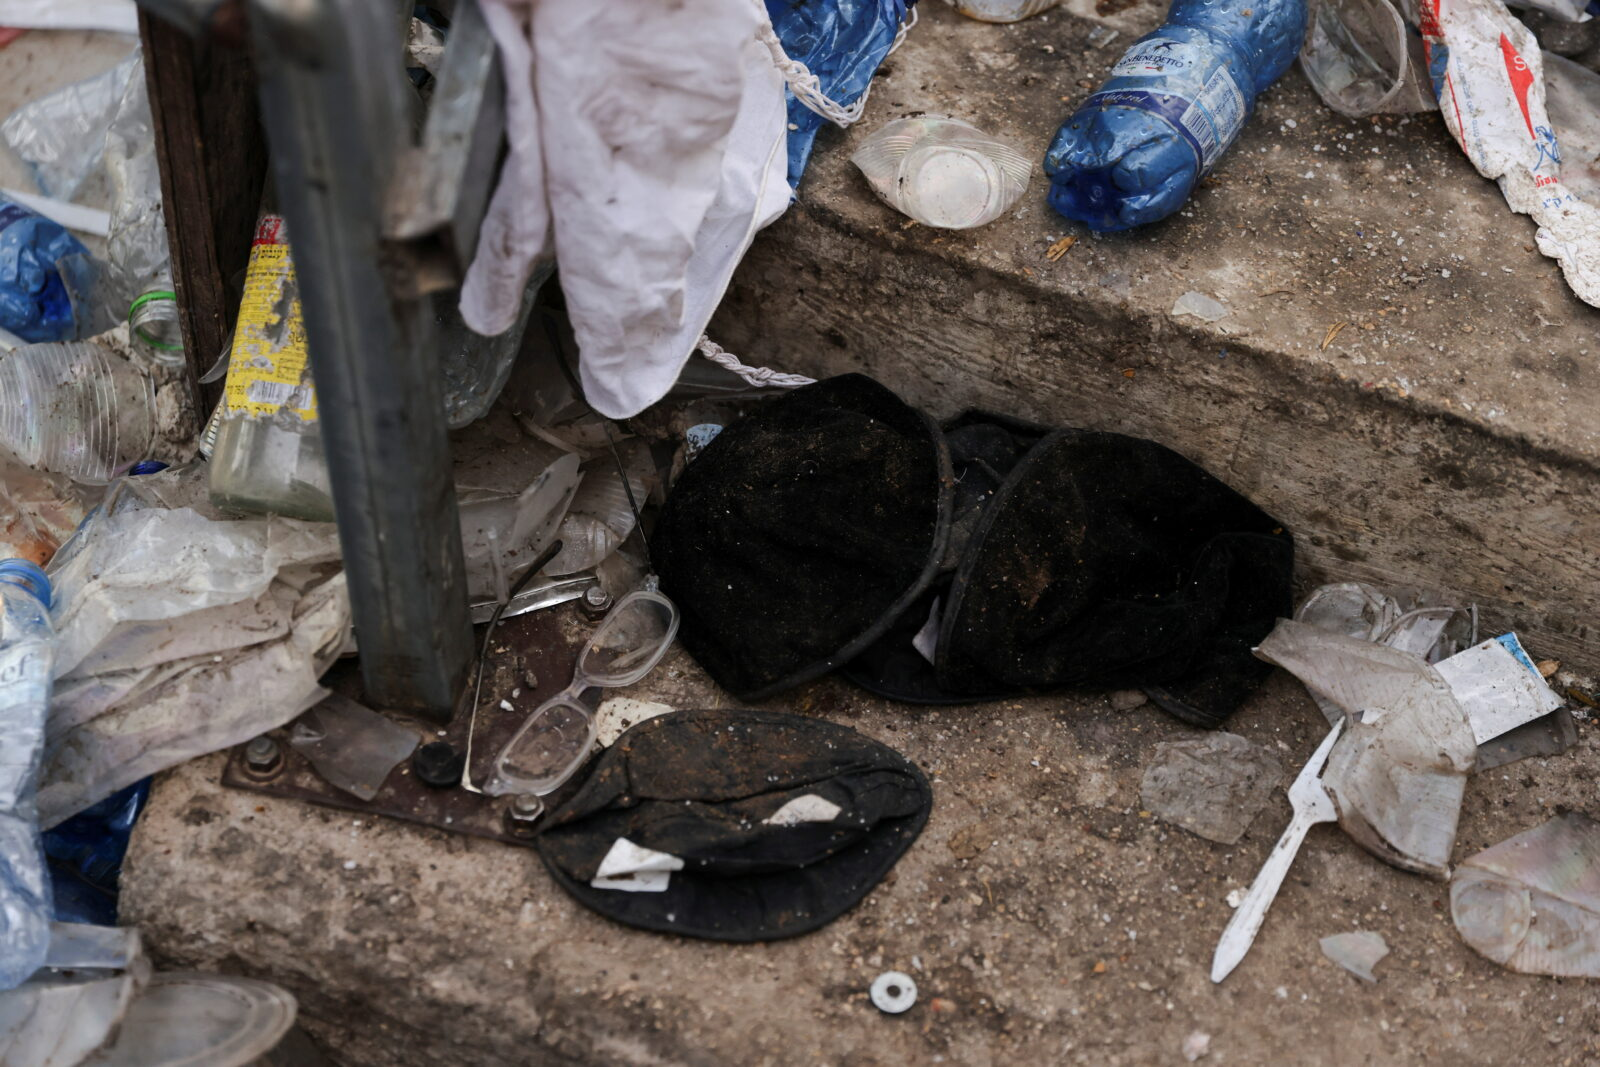 Black yarmulkas seen on stairs with other waste on it as well in Mount Meron